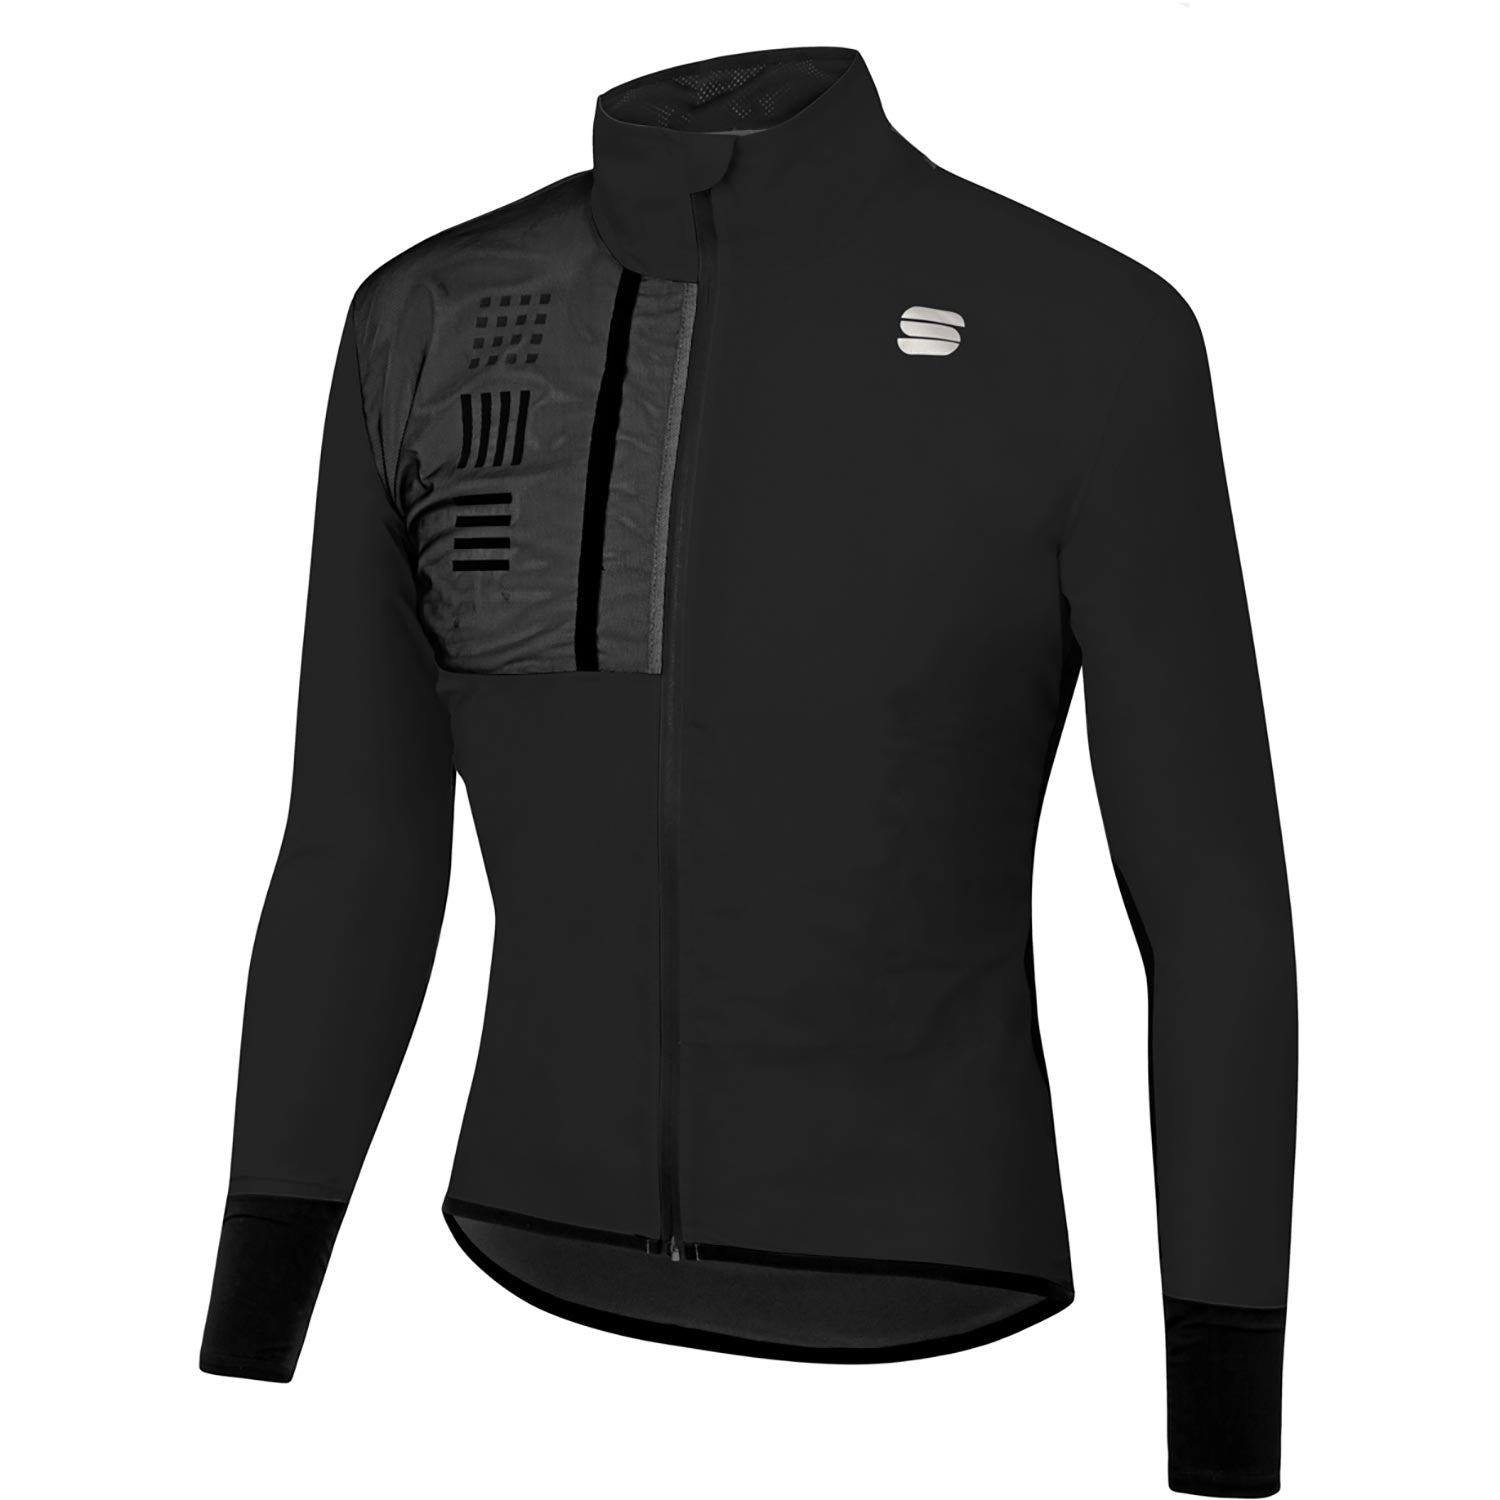 Sportful-Sportful DR Jacket-Black-S-SF205050022-saddleback-elite-performance-cycling